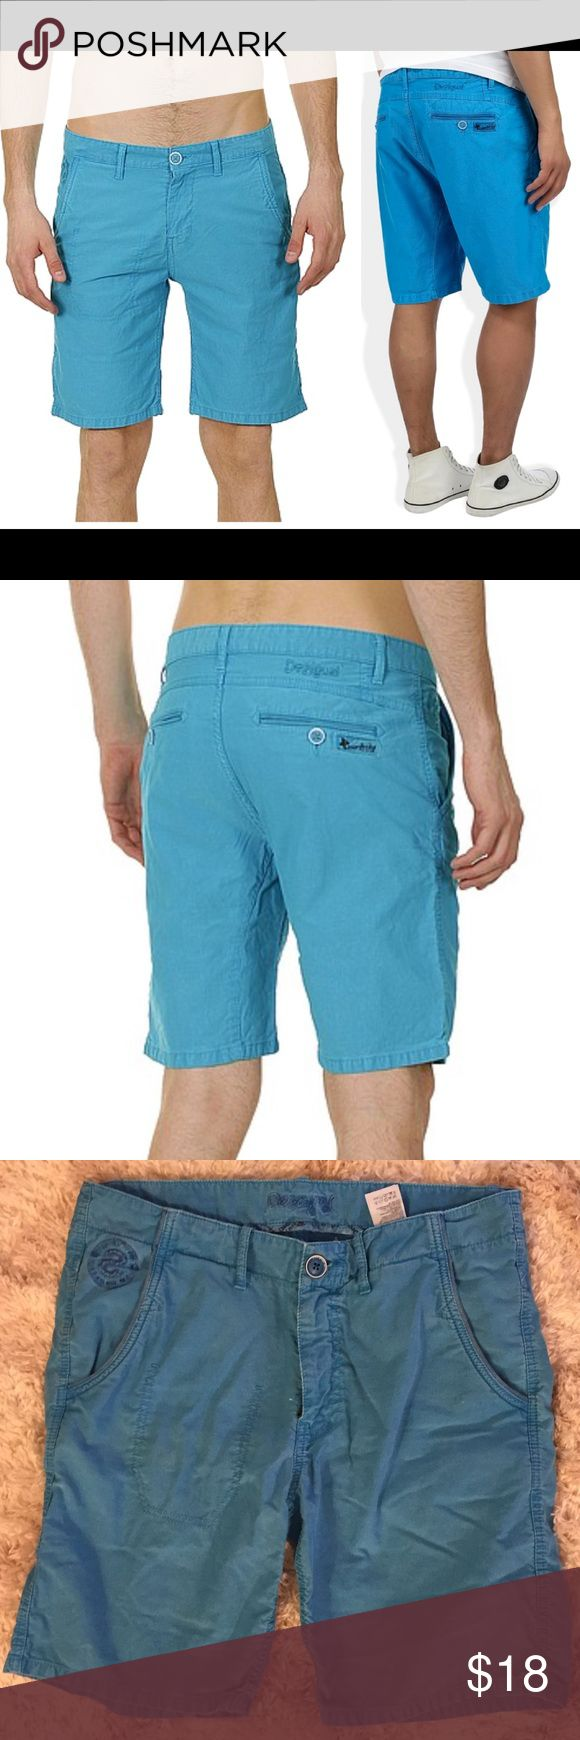 Desigual corduroy men's shorts Desigual men's shorts in turquoise Corduroy   Men's Desigual shorts, model 41P1612/Timo, canvas shorts with button and YKK zip opening, belt loops, classic pockets, back pockets with button, bottom hem can be rolled up, two simple pockets on front, 65% polyester and 25% cotton.  Size 32 Desigual Shorts